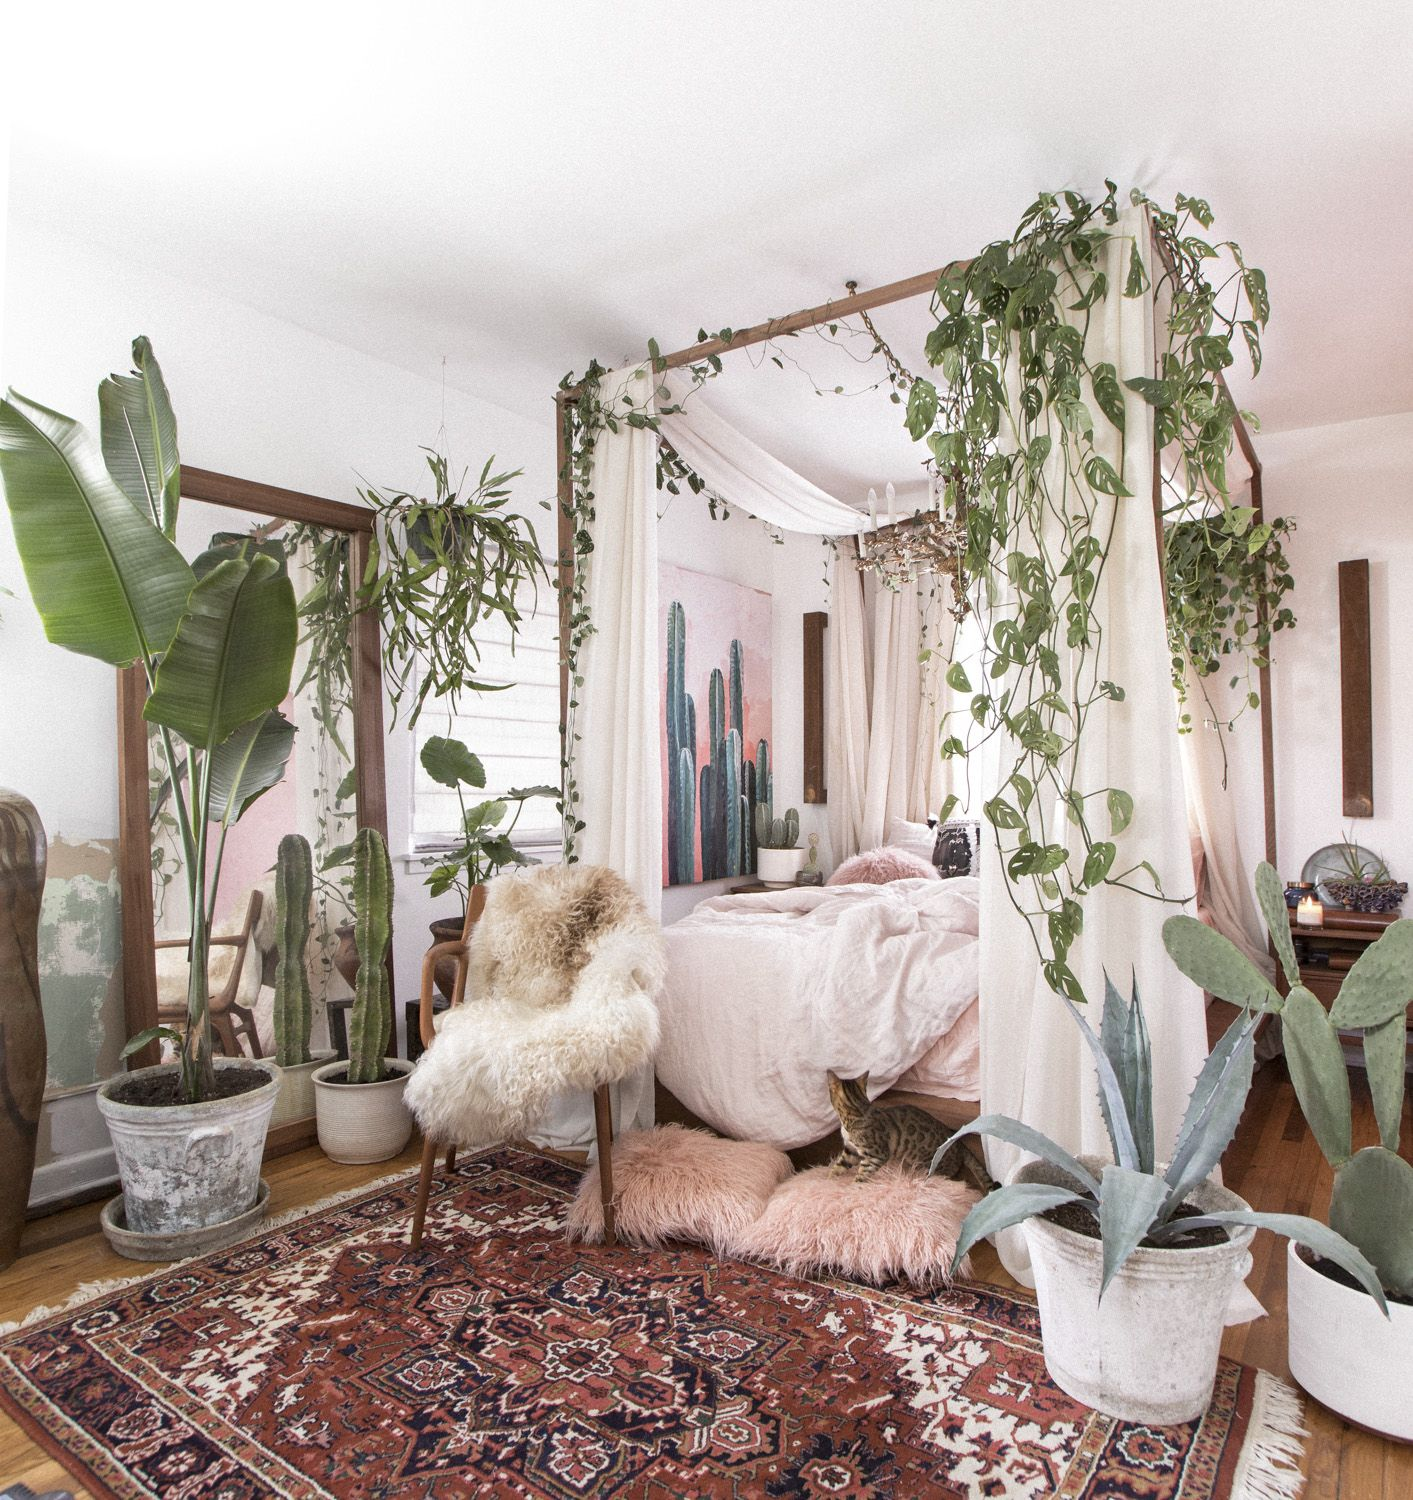 Small Space Decor Tips From This Gorgeous Boho Apartment Bedroom